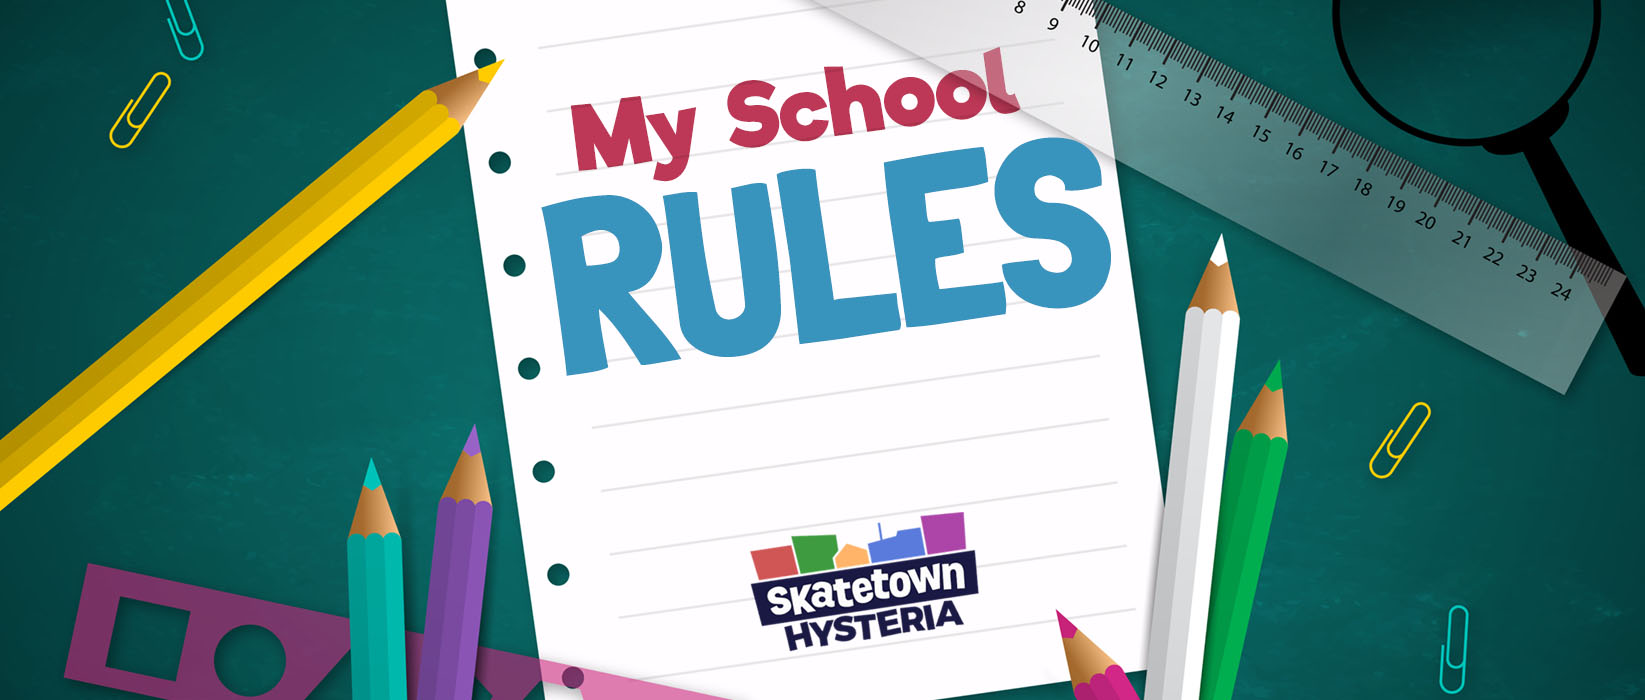 My School Rules Promotion